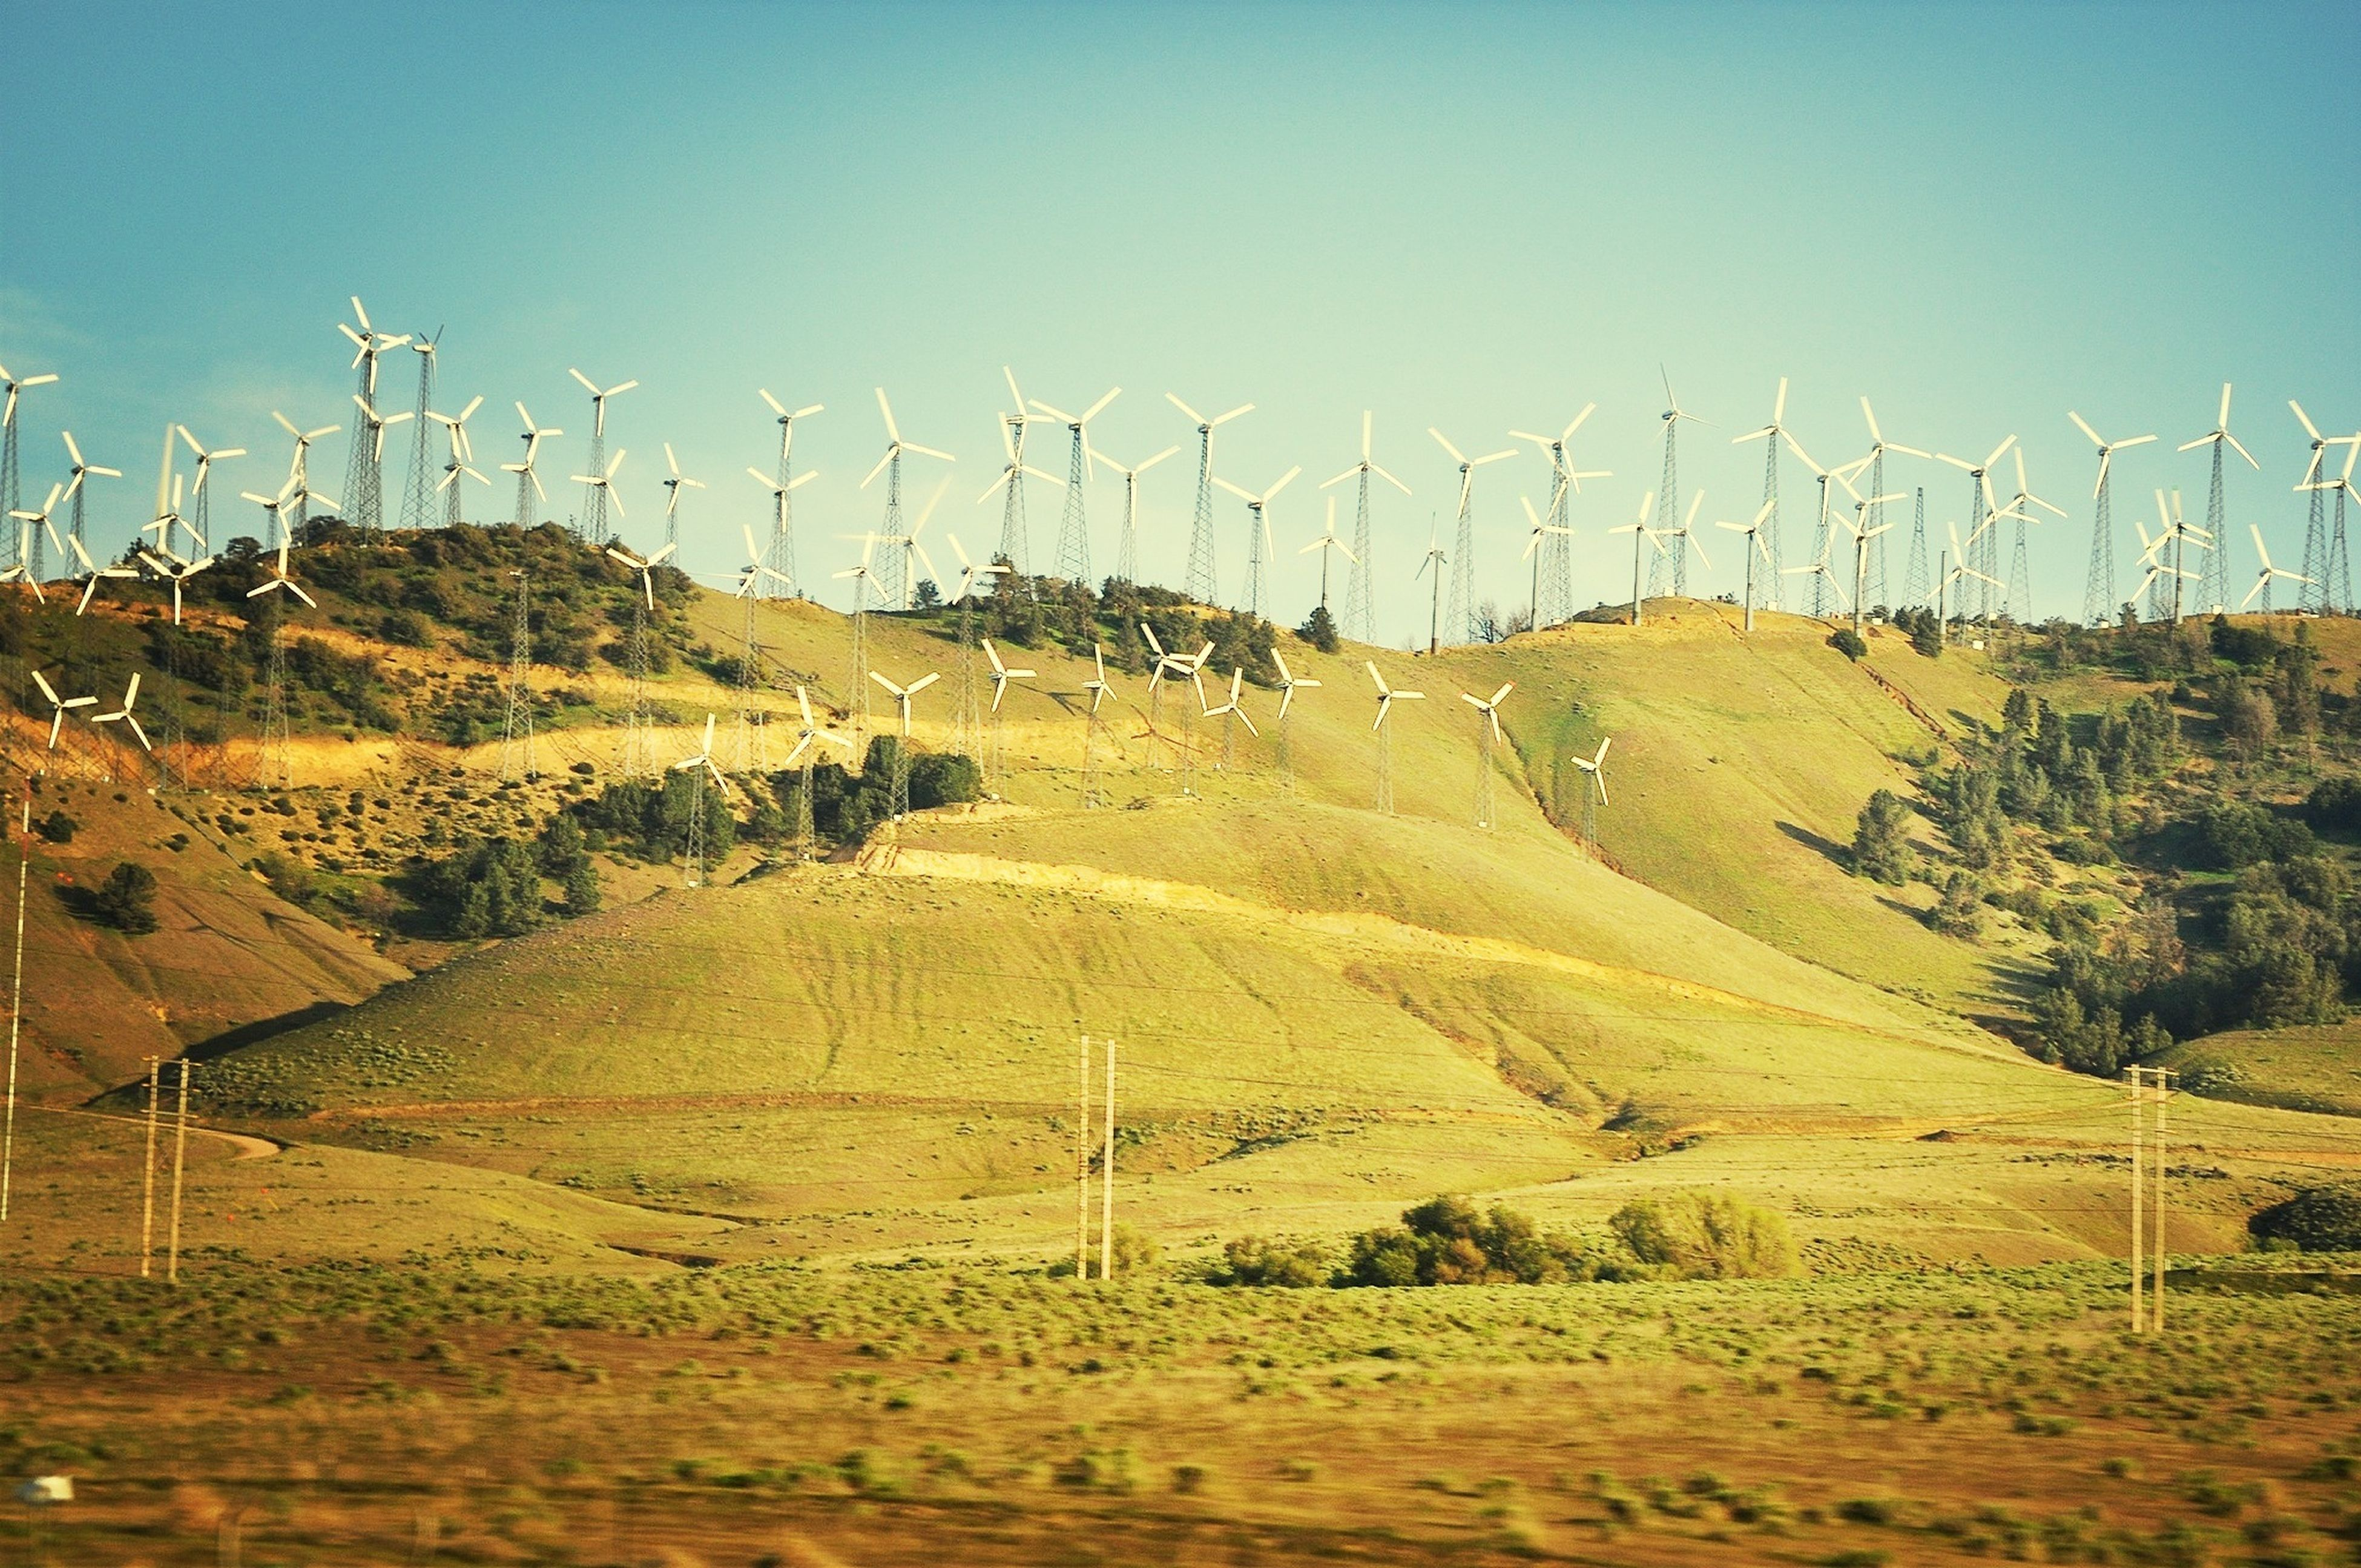 landscape, field, fuel and power generation, clear sky, rural scene, electricity pylon, tranquil scene, tranquility, alternative energy, wind power, wind turbine, agriculture, grass, windmill, mountain, environmental conservation, farm, power line, electricity, power supply